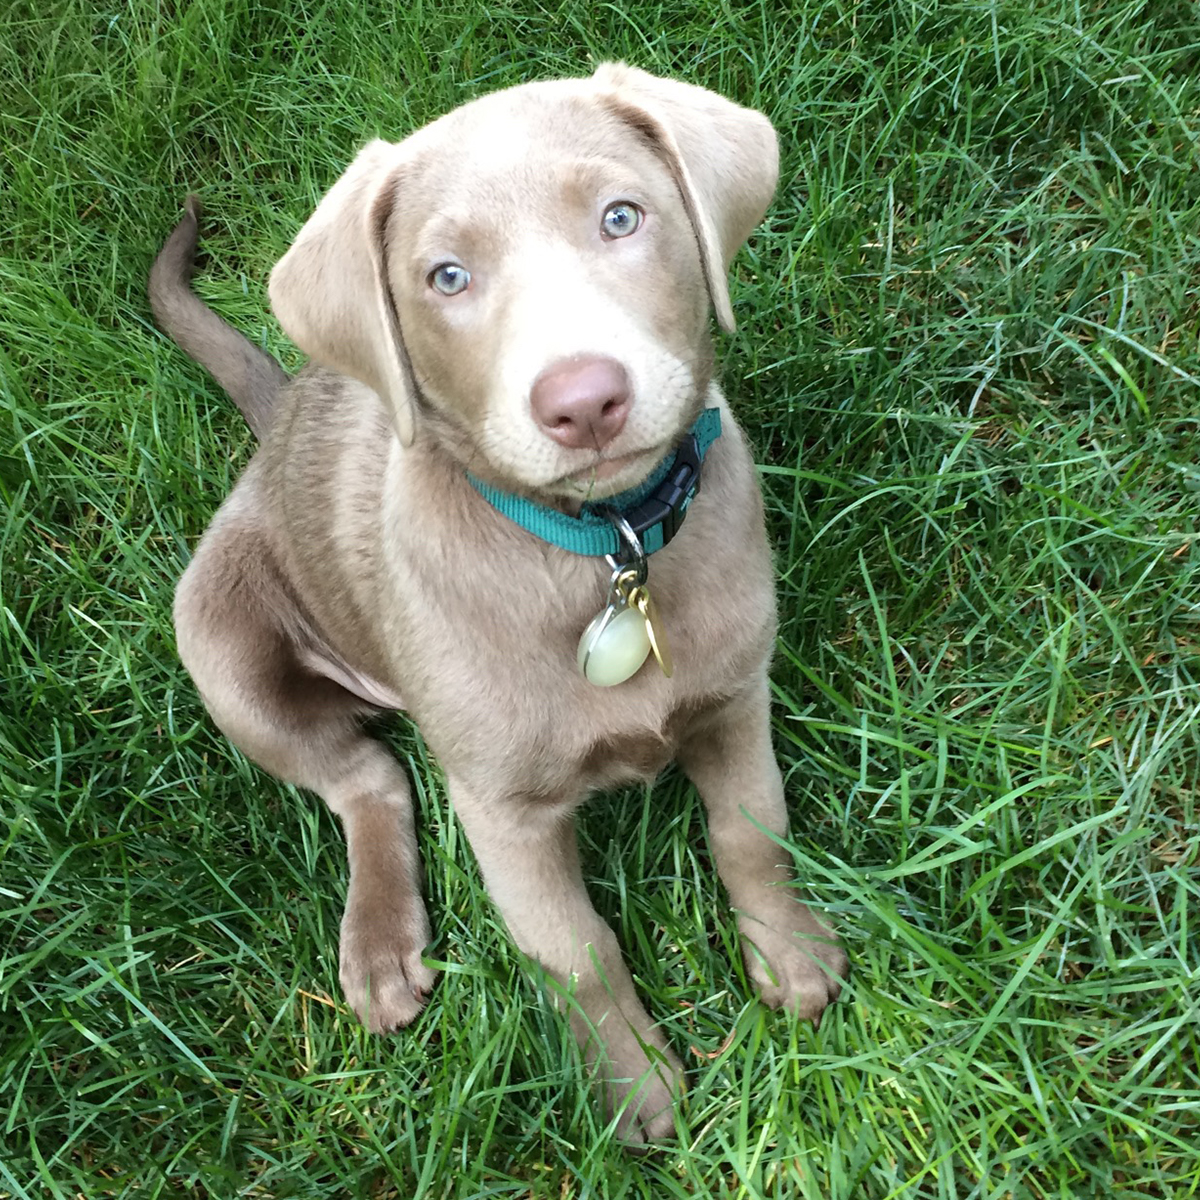 12 week old silver lab puppy